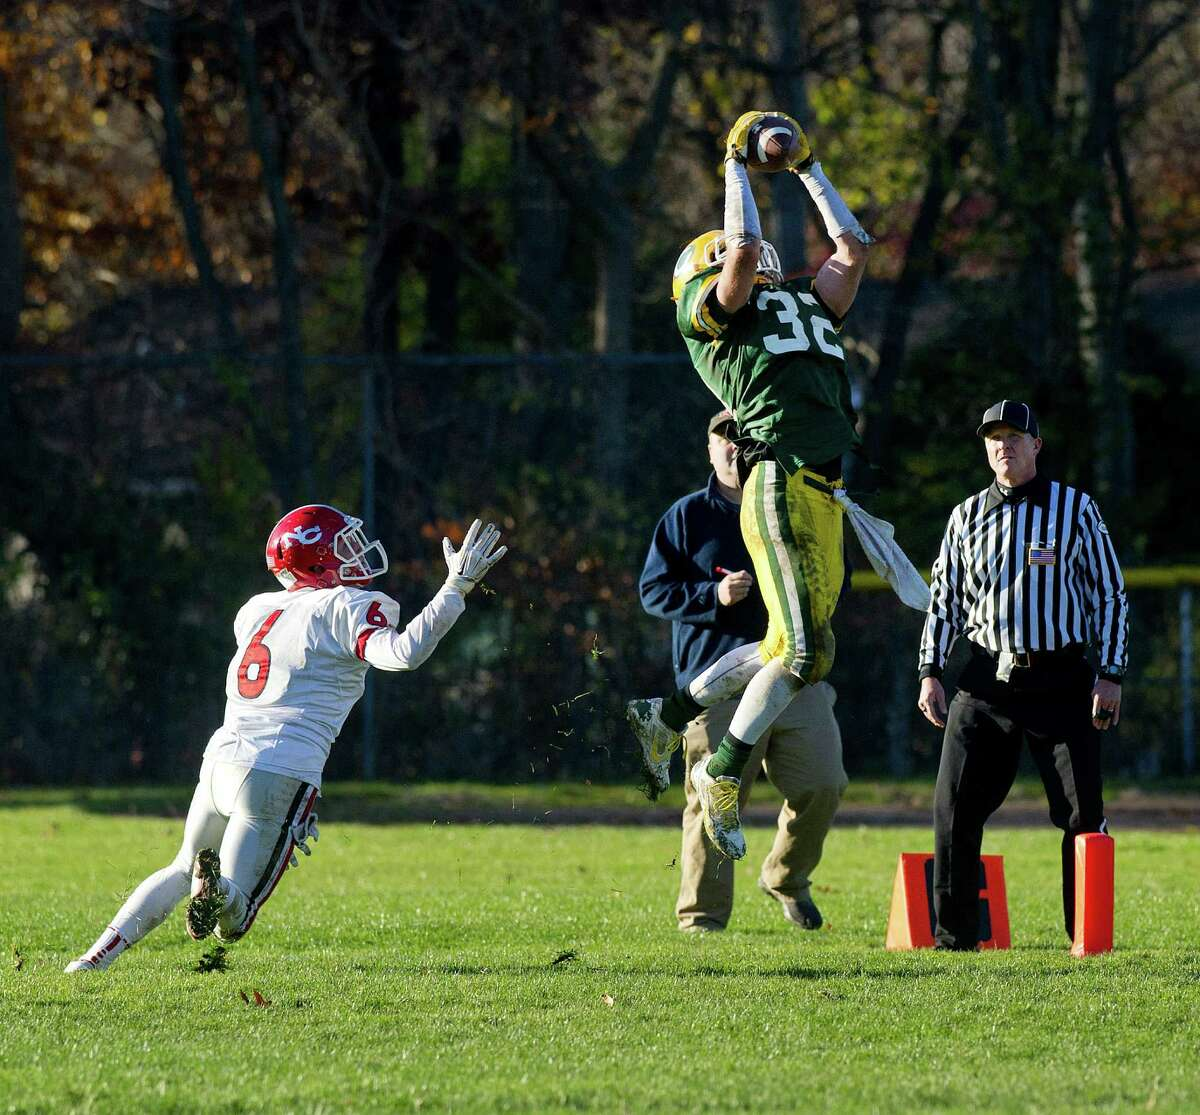 Trinity Catholic's Thomas Costigan makes a catch in the end zone for a touchdown during Saturday's football game at Trinity Catholic High School on November 15, 2014.